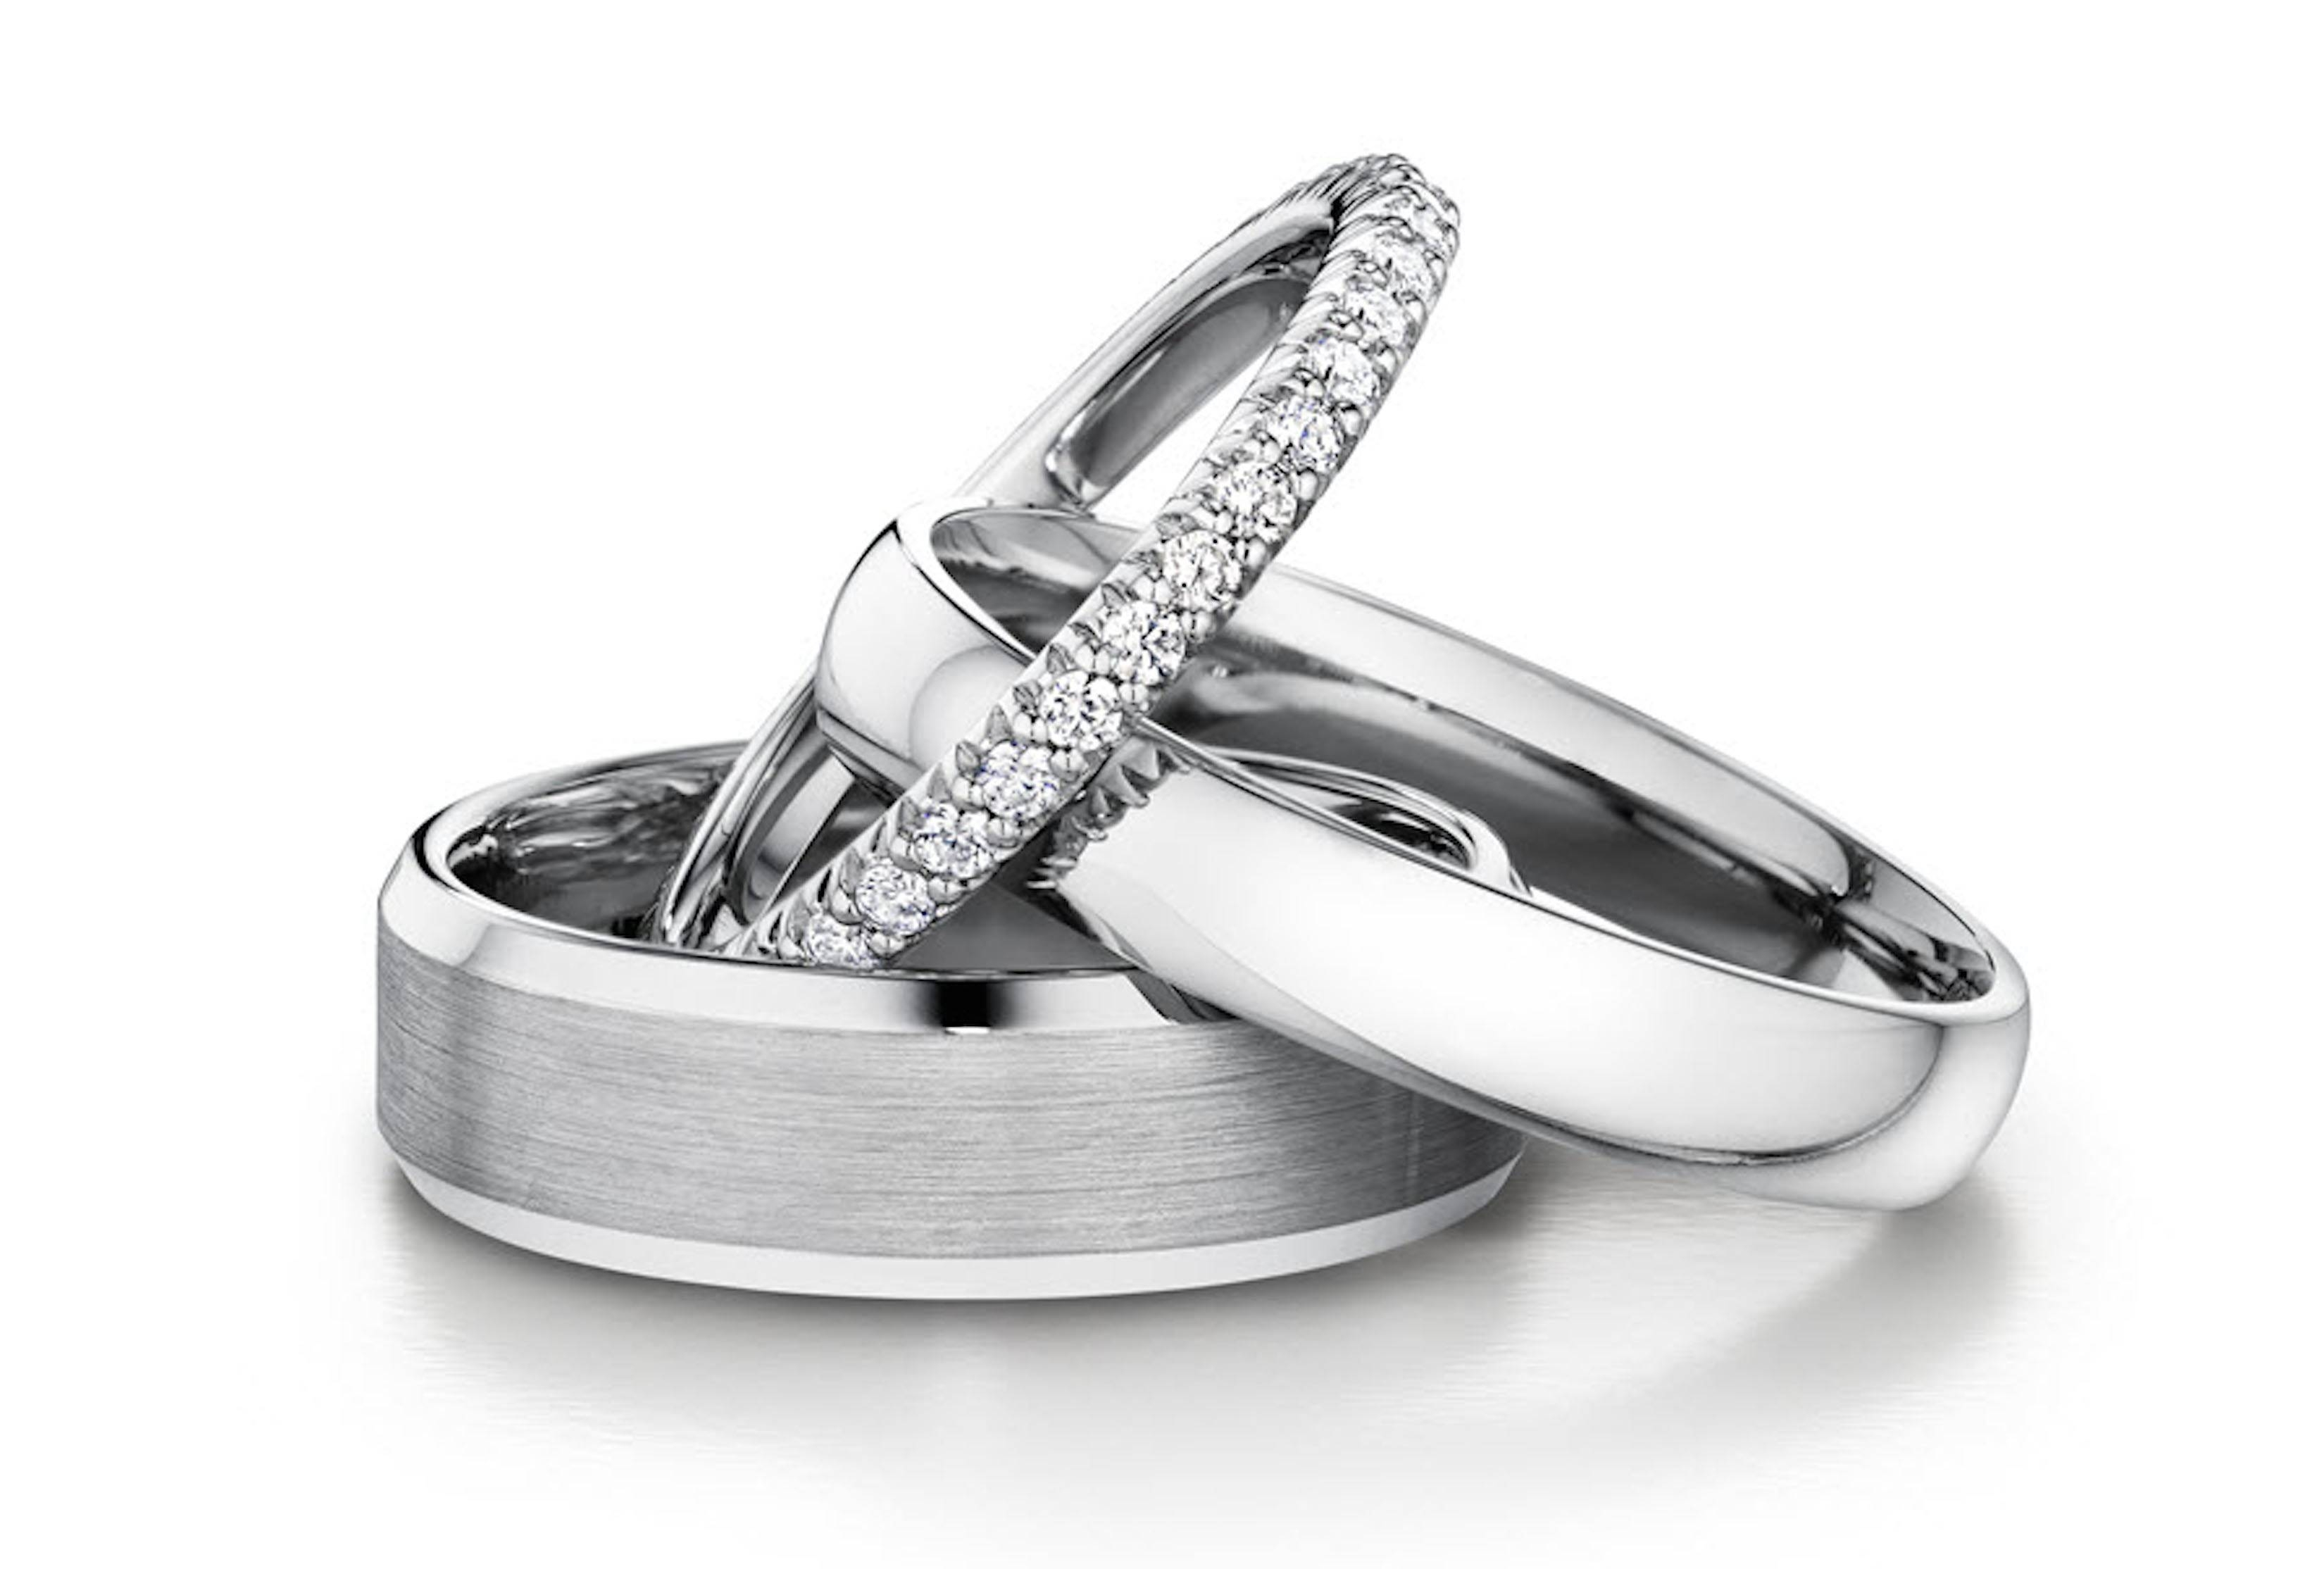 Popular Wedding Band Metals For Men & Women | Ritani Regarding Men's Wedding Bands Metals (View 8 of 15)